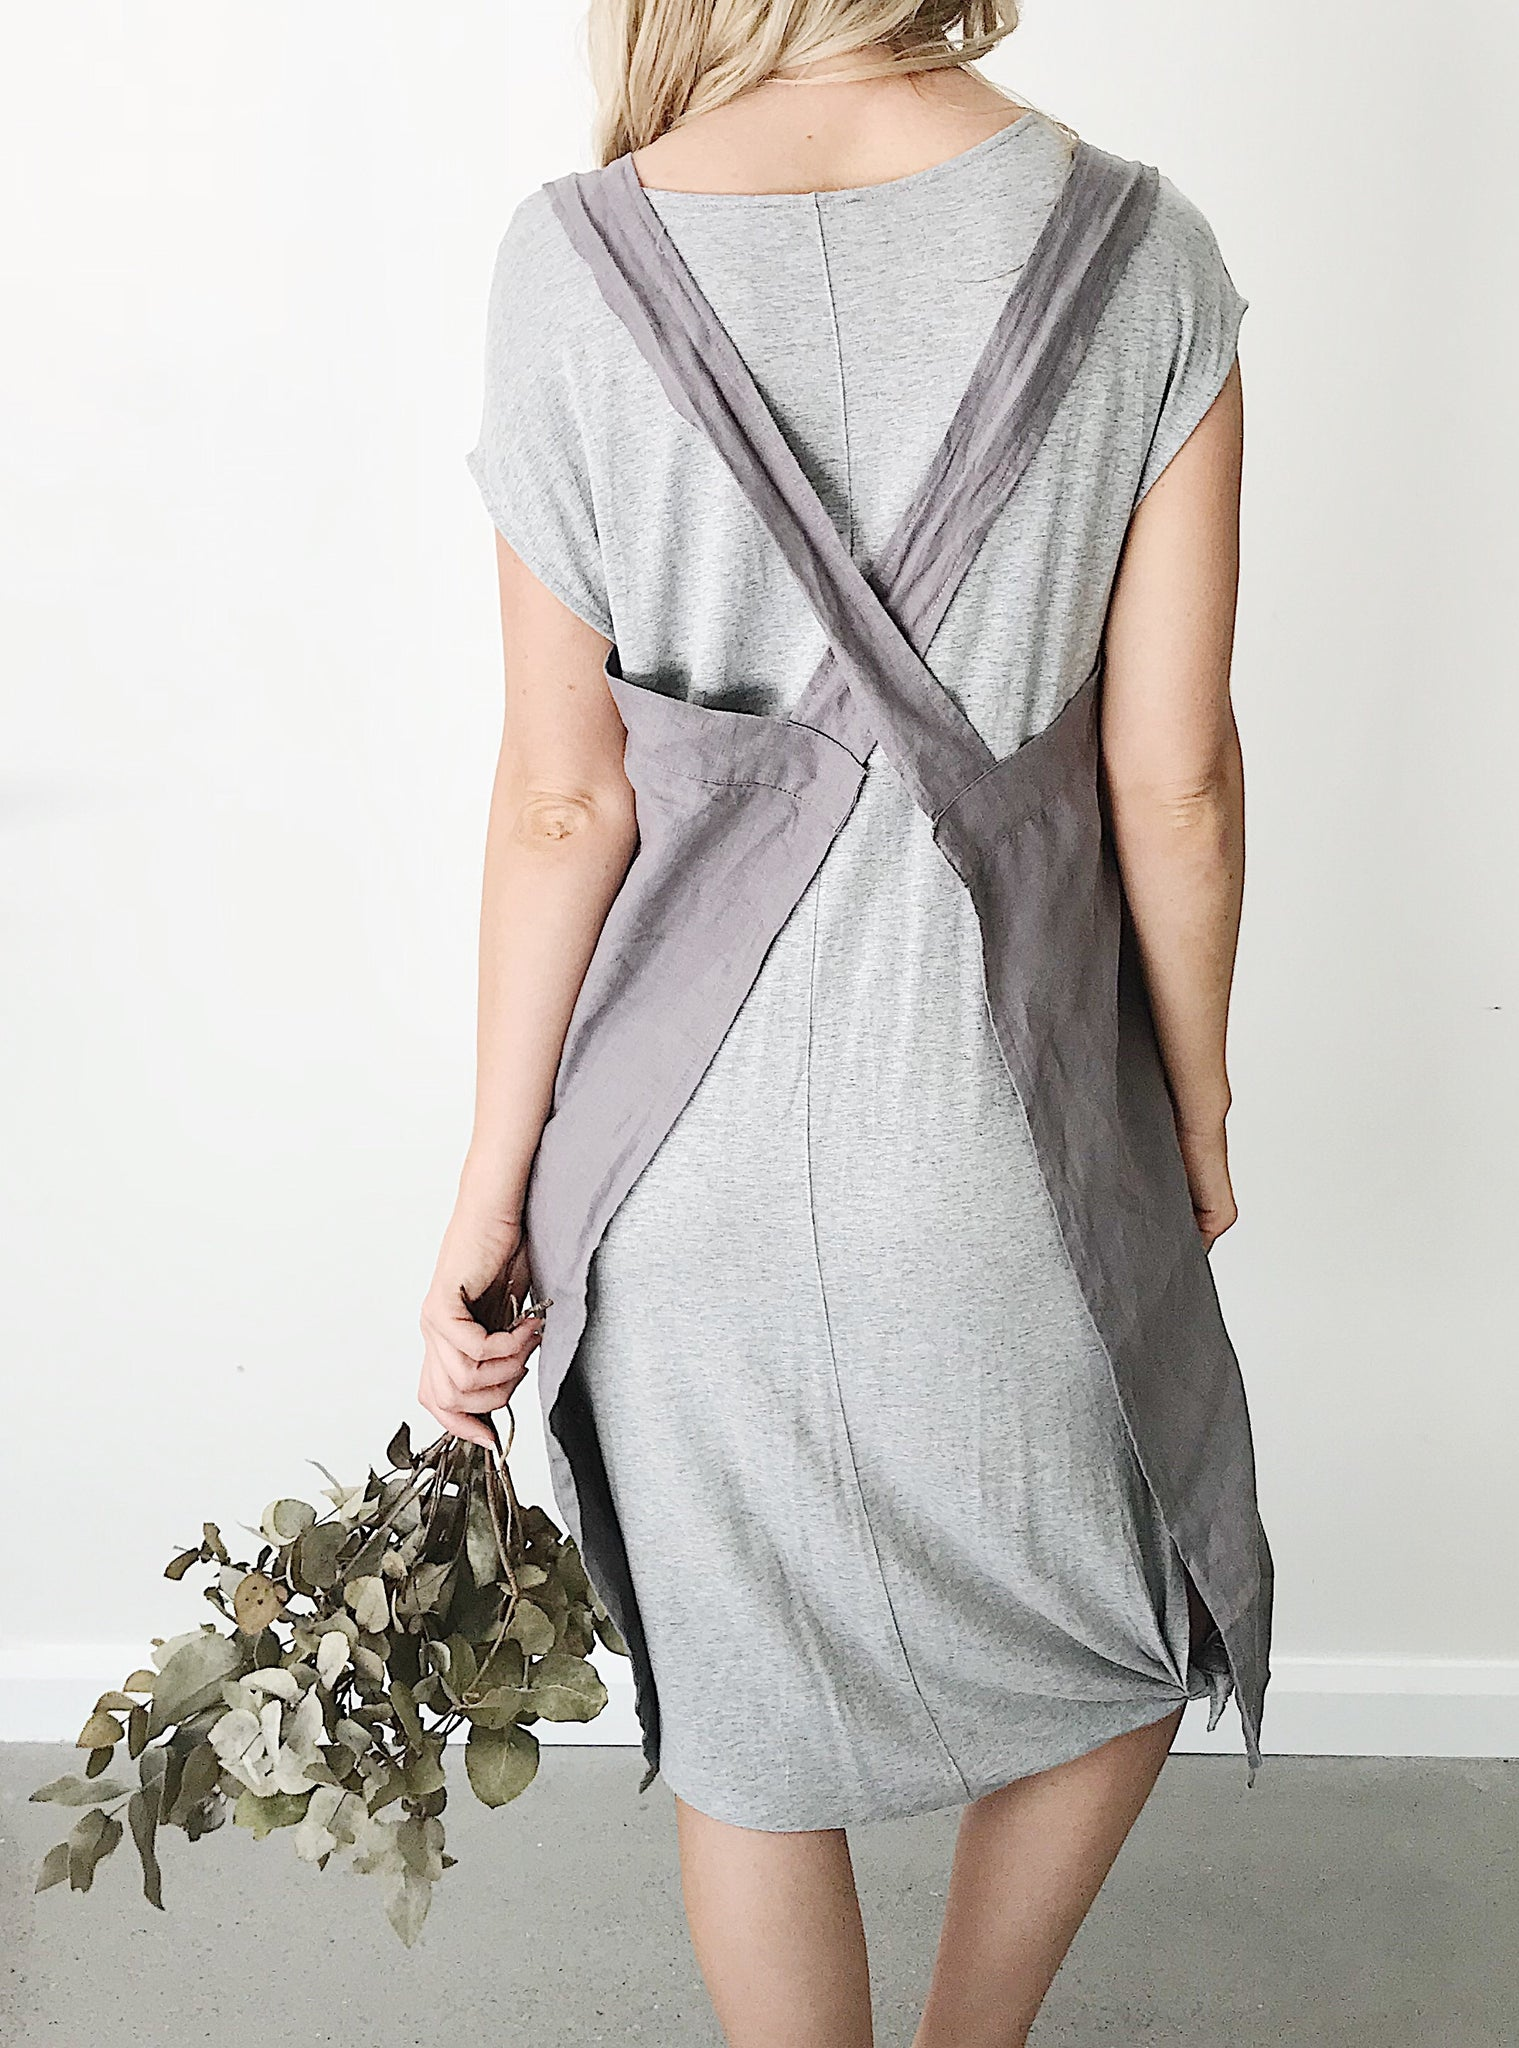 'Everyday' Linen Apron - Charcoal